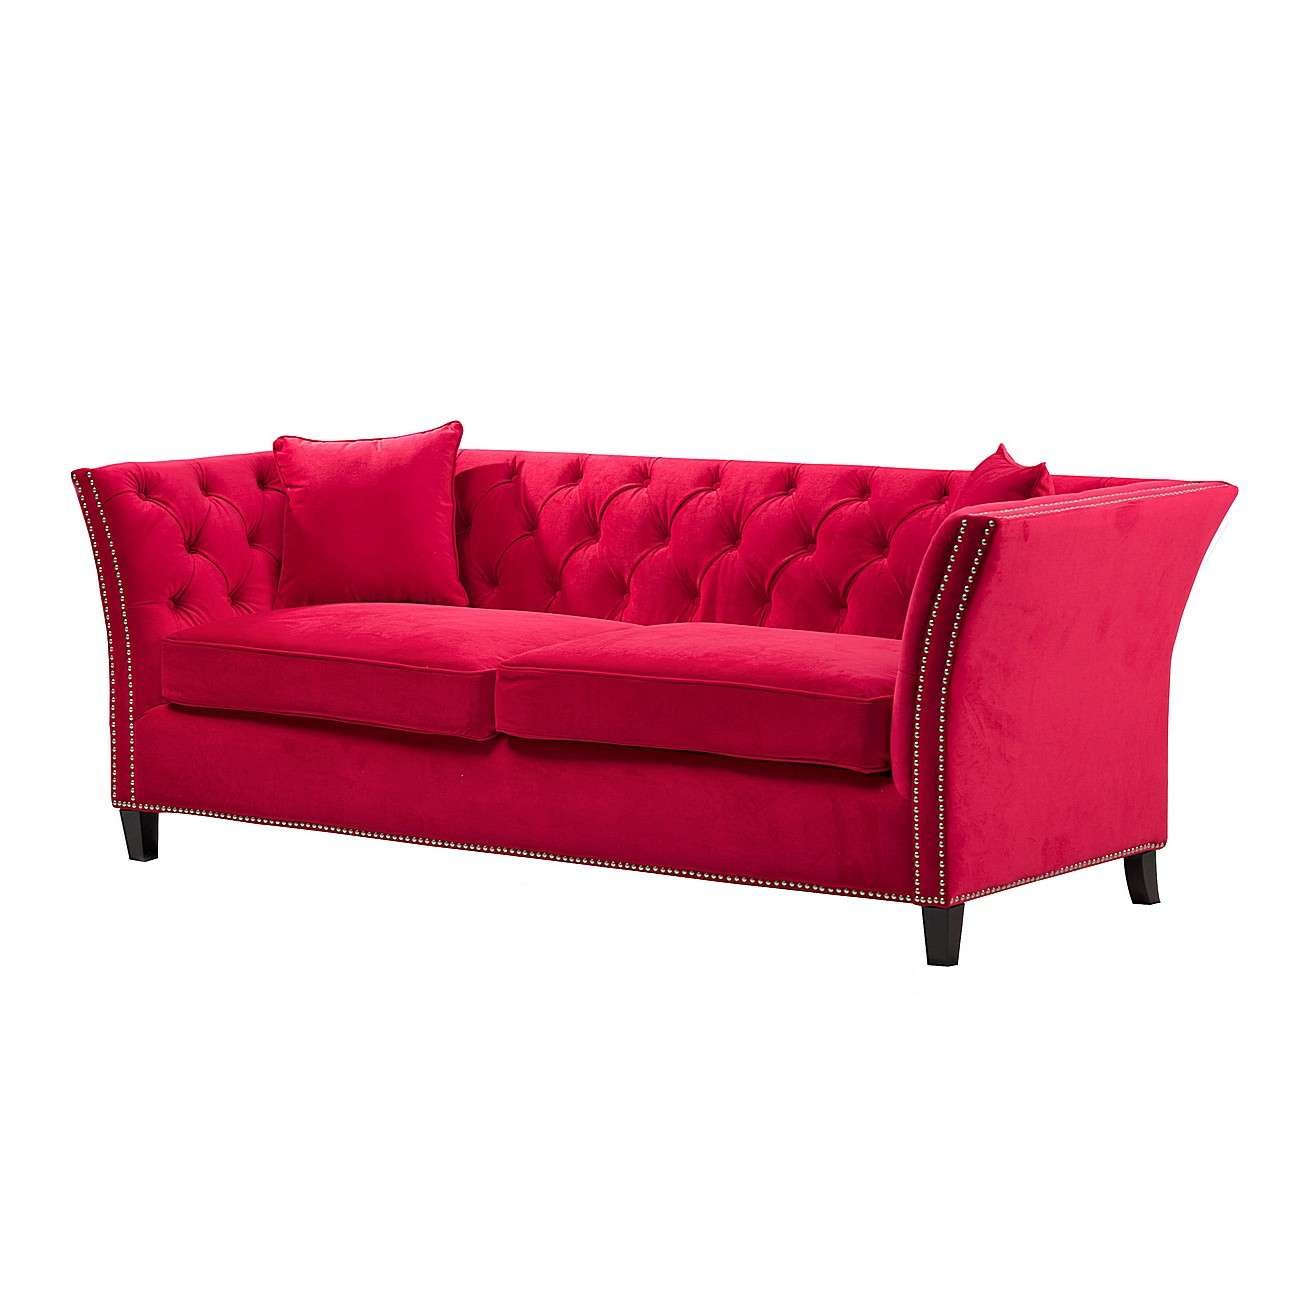 sofa chesterfield modern velvet raspberry red 3 os. Black Bedroom Furniture Sets. Home Design Ideas